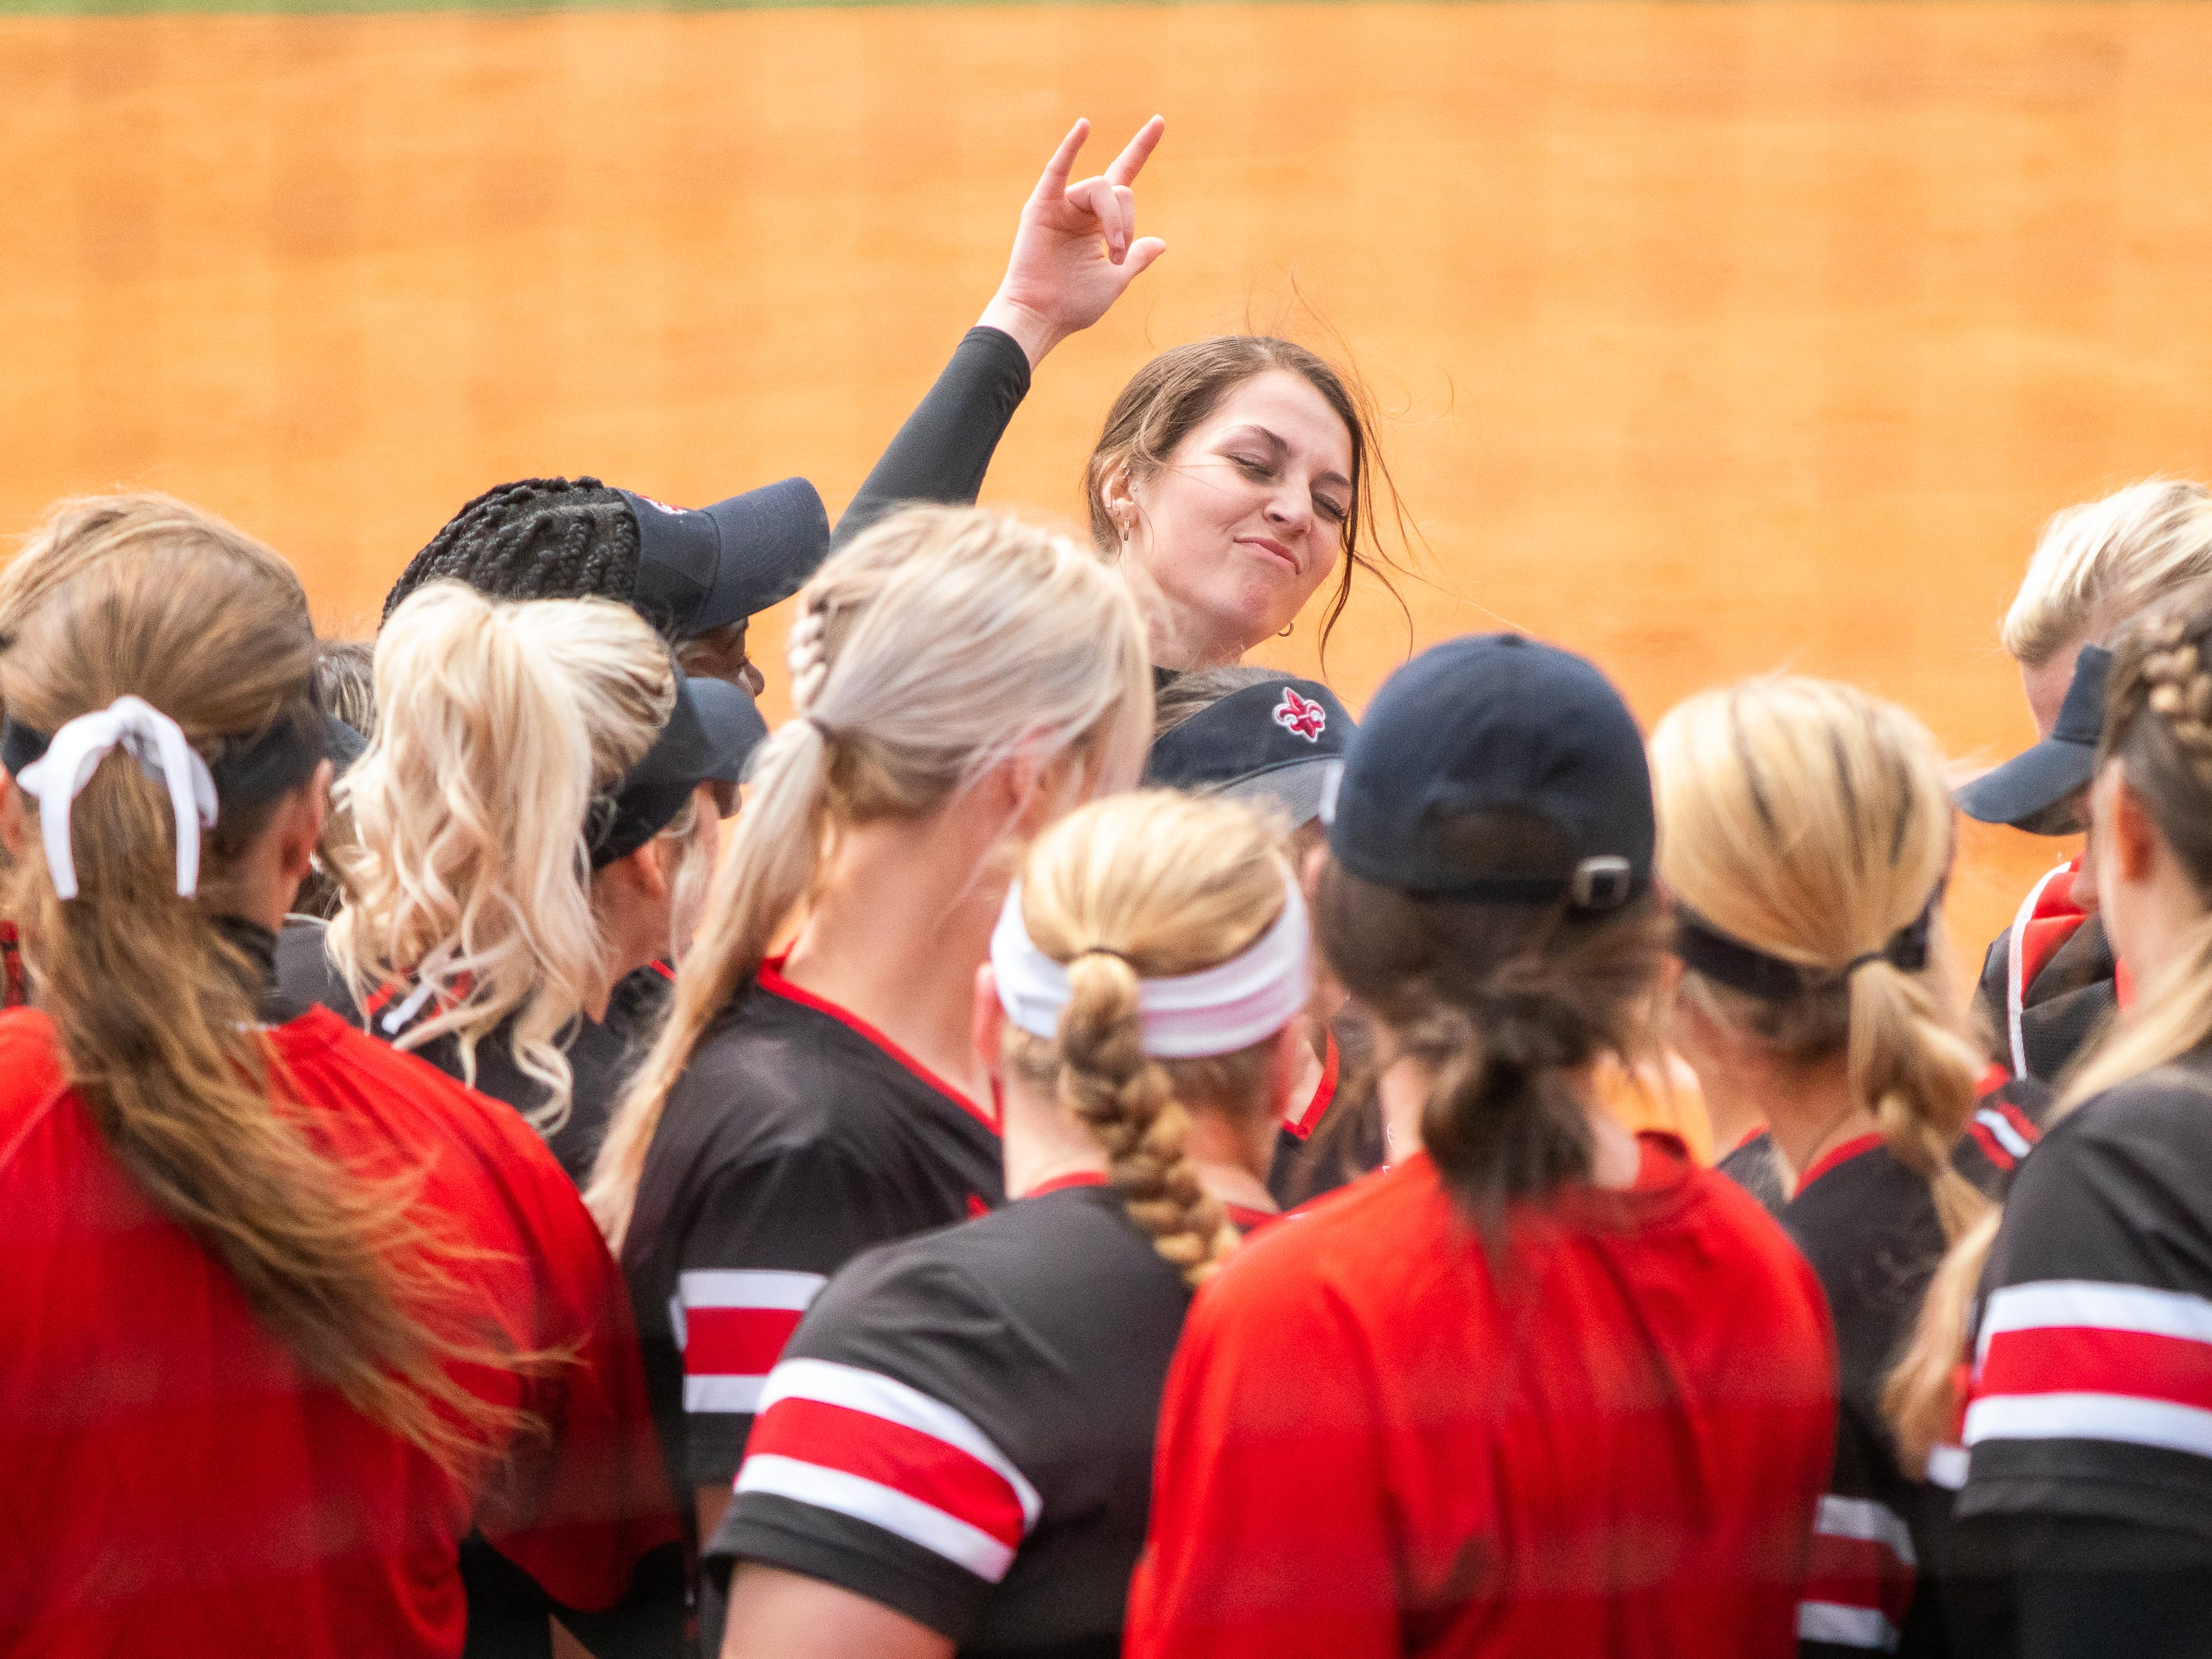 UL's softball team celebrates in between innings as the Ragin' Cajuns take on the Troy Trojans at Yvette Girouard Field at Lamson Park on Saturday, March 16, 2019.